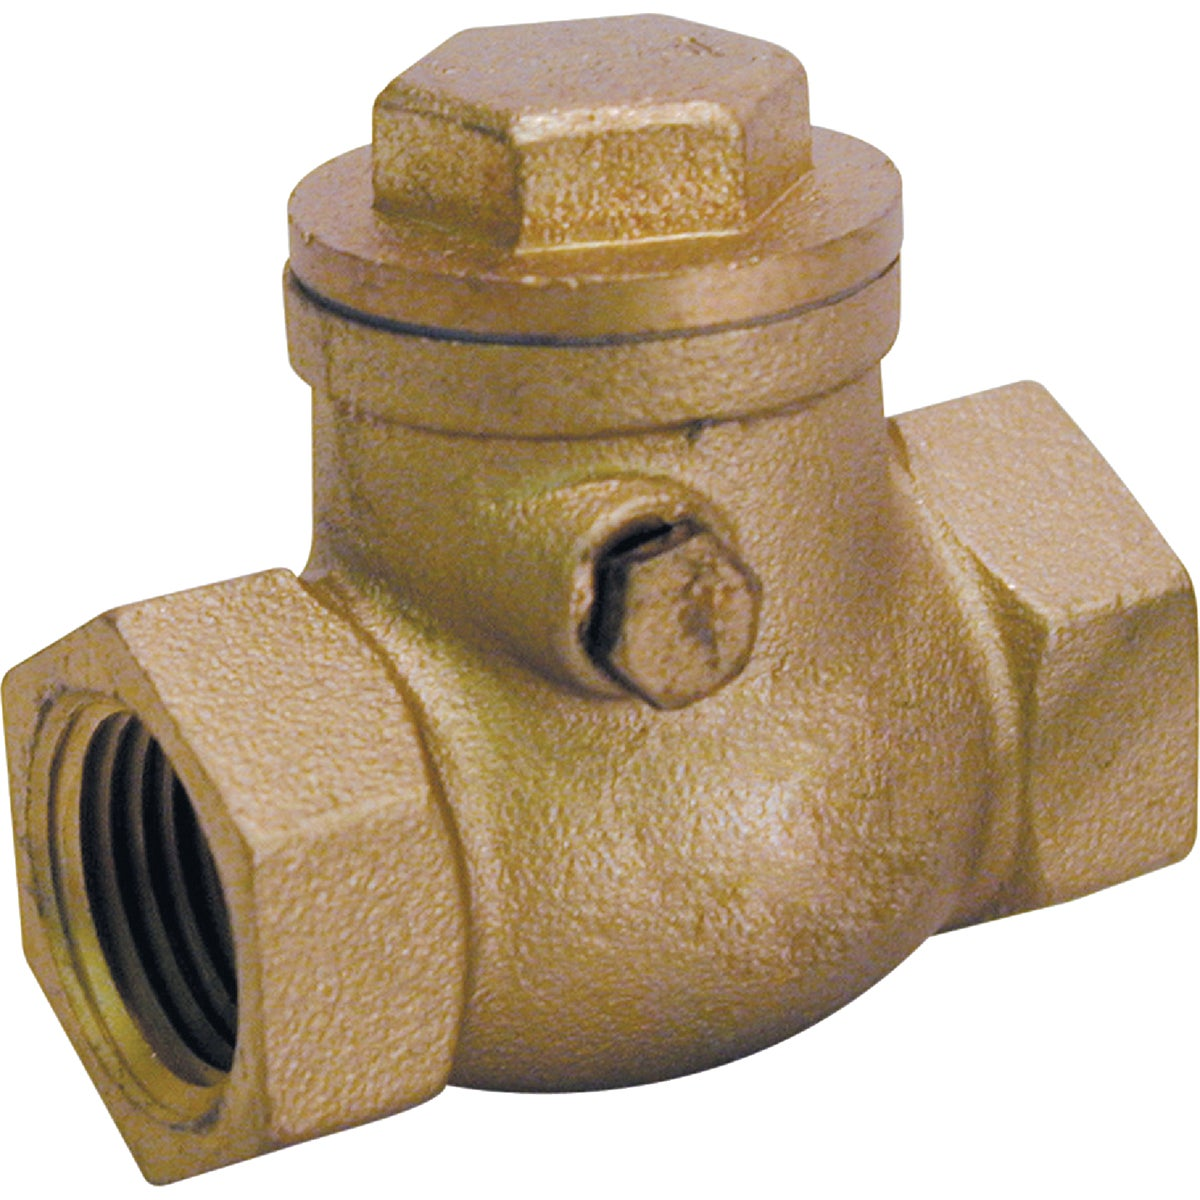 "3/4"" CHECK VALVE - 101-004NL by Mueller B K"